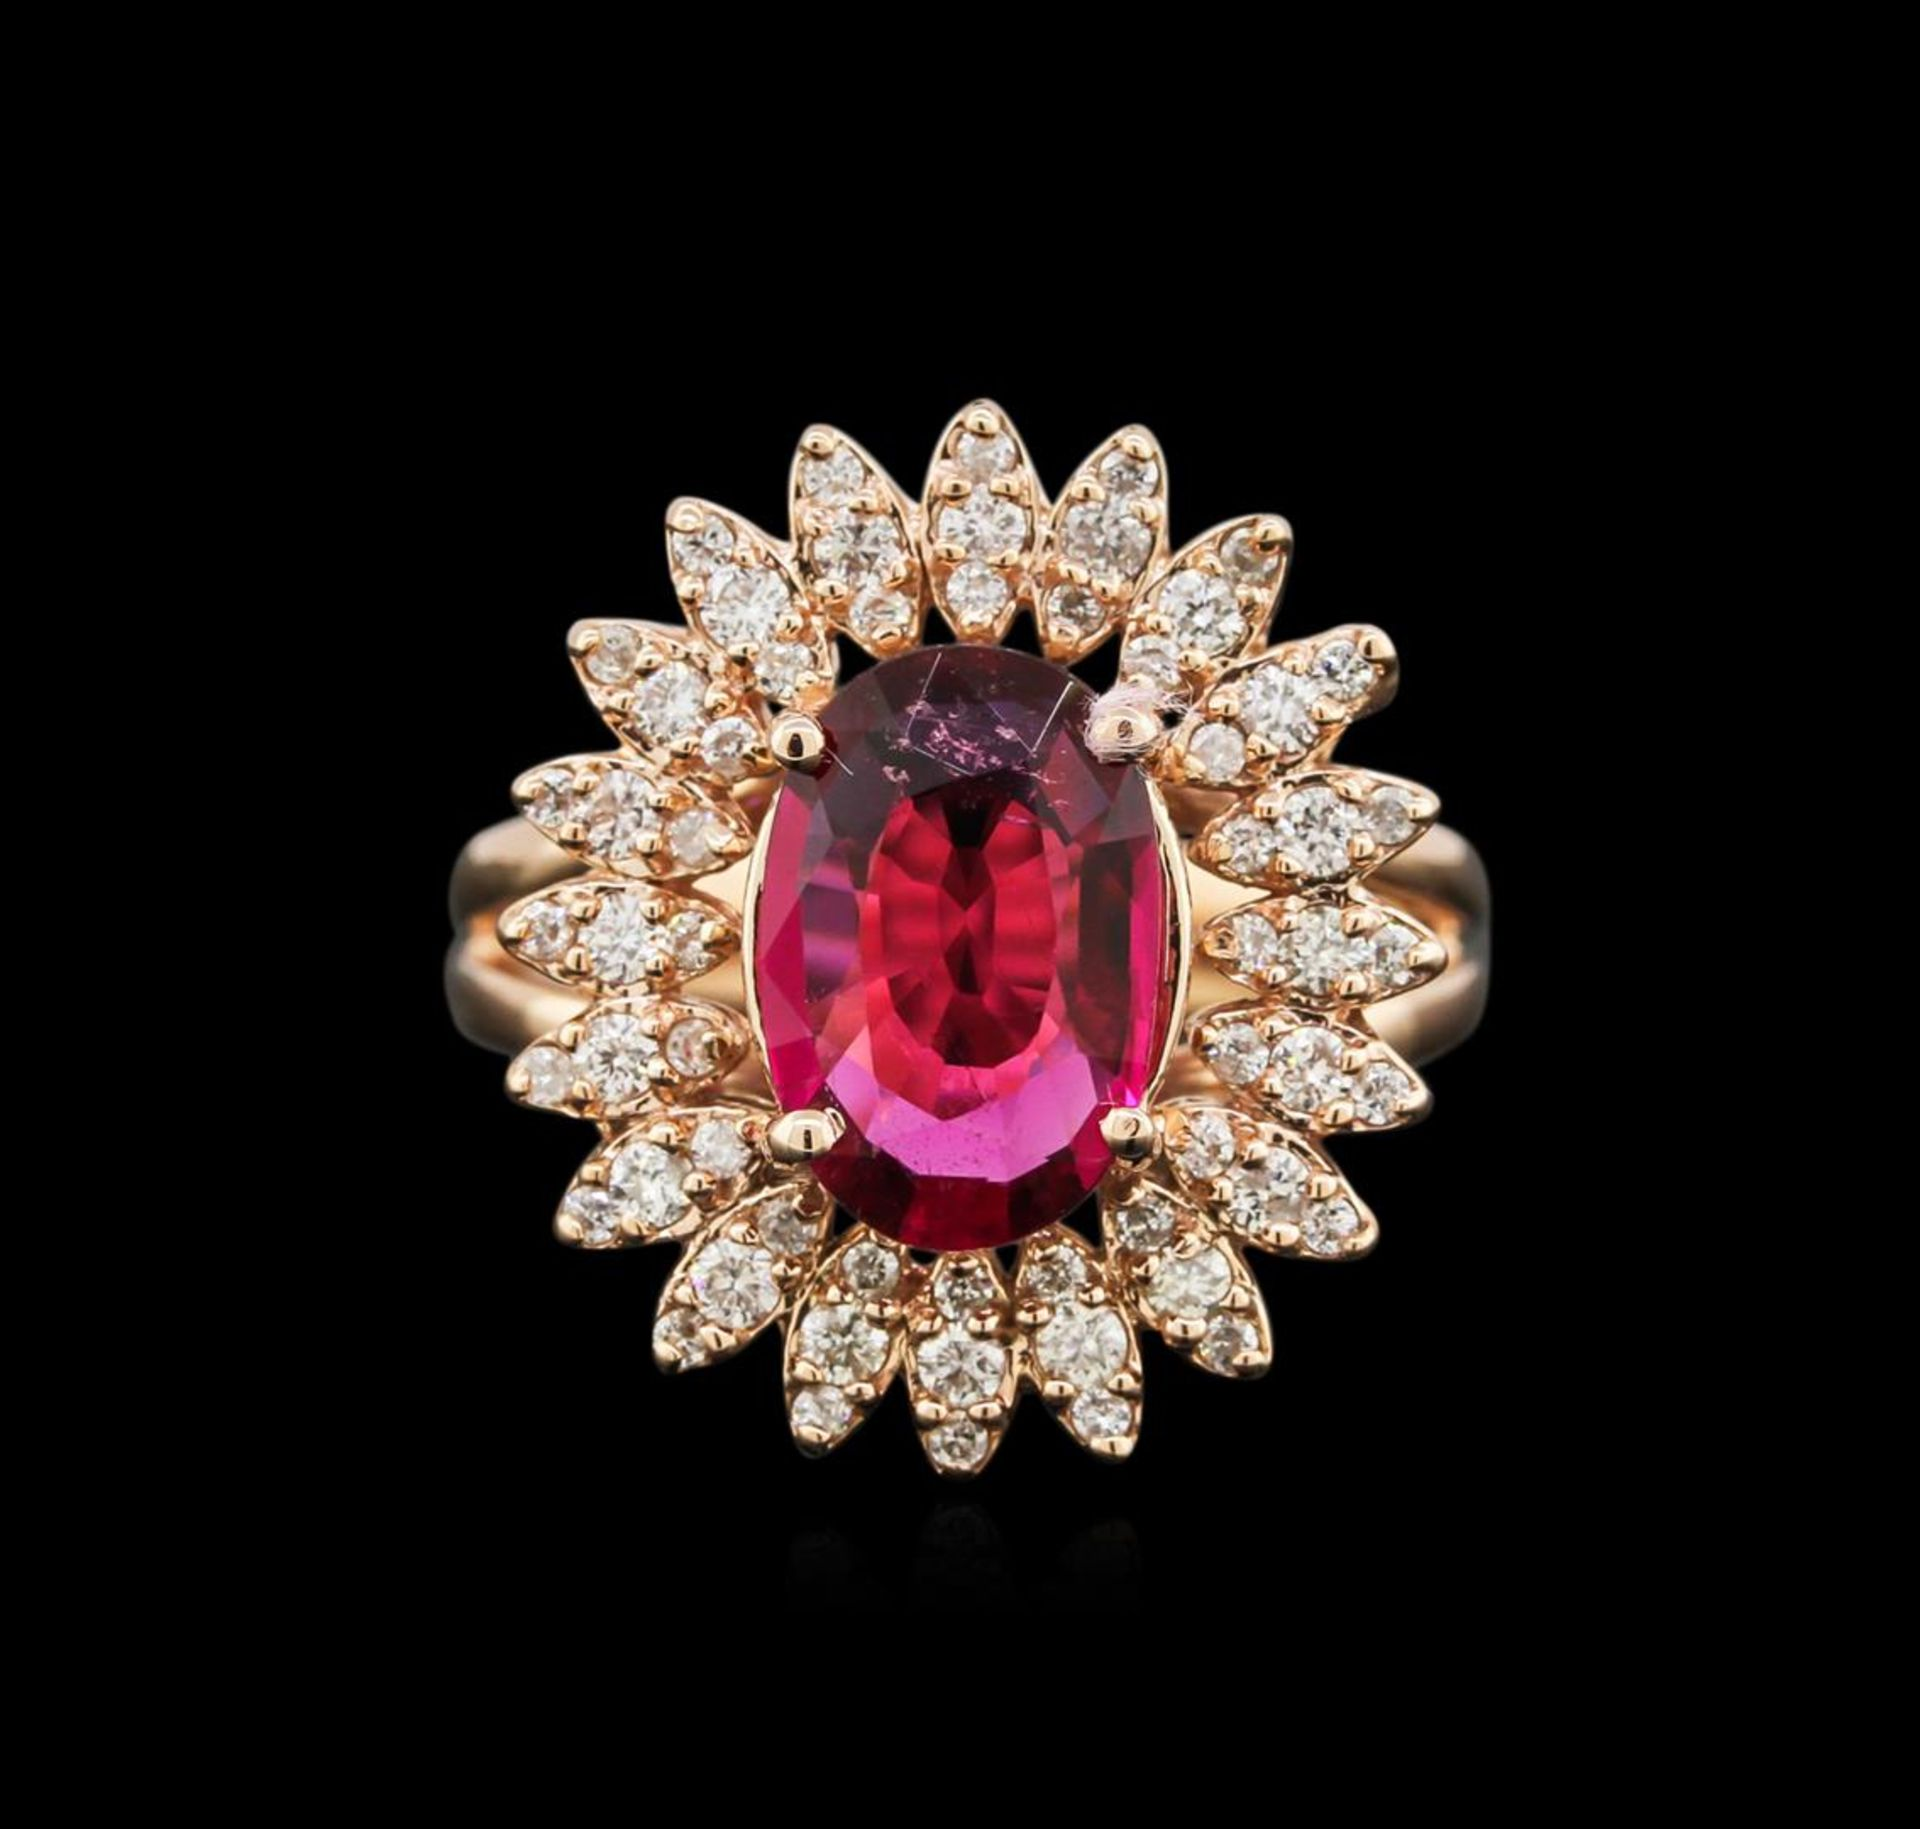 1.99 ctw Ruby and Diamond Ring - 14KT Rose Gold - Image 2 of 3